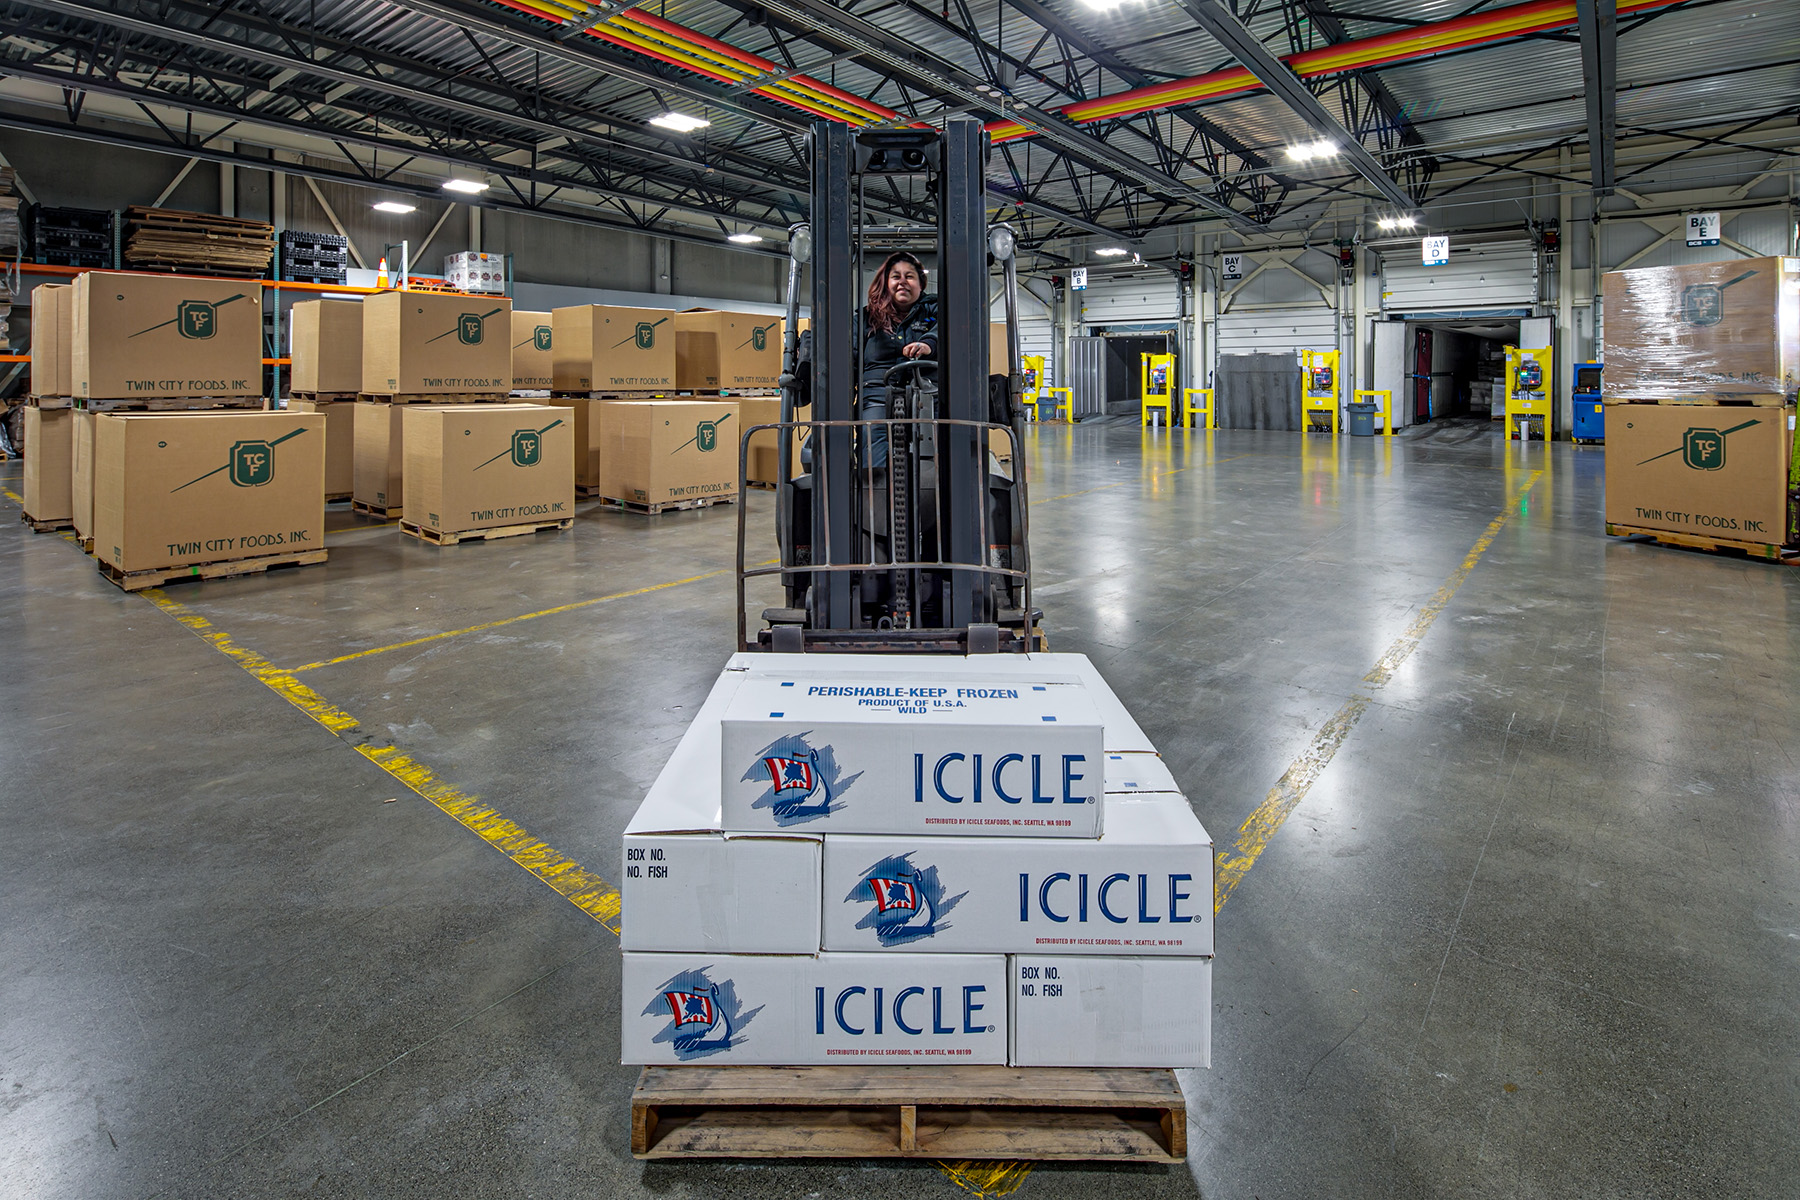 BCS worker driving a forklift loaded with a pallet of Icicle boxes.